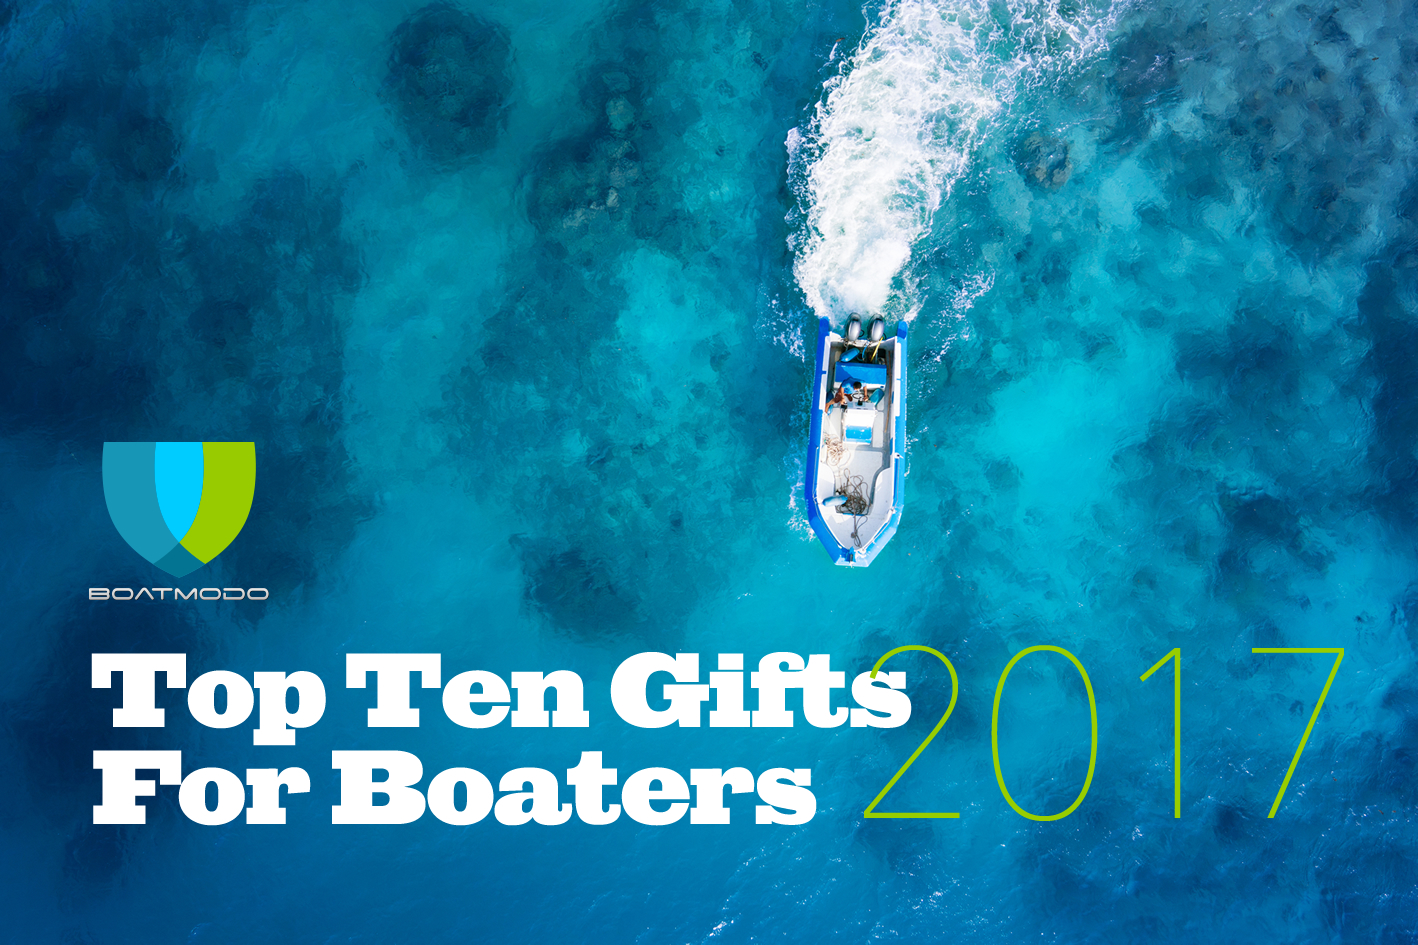 2017 Gifts For Boaters